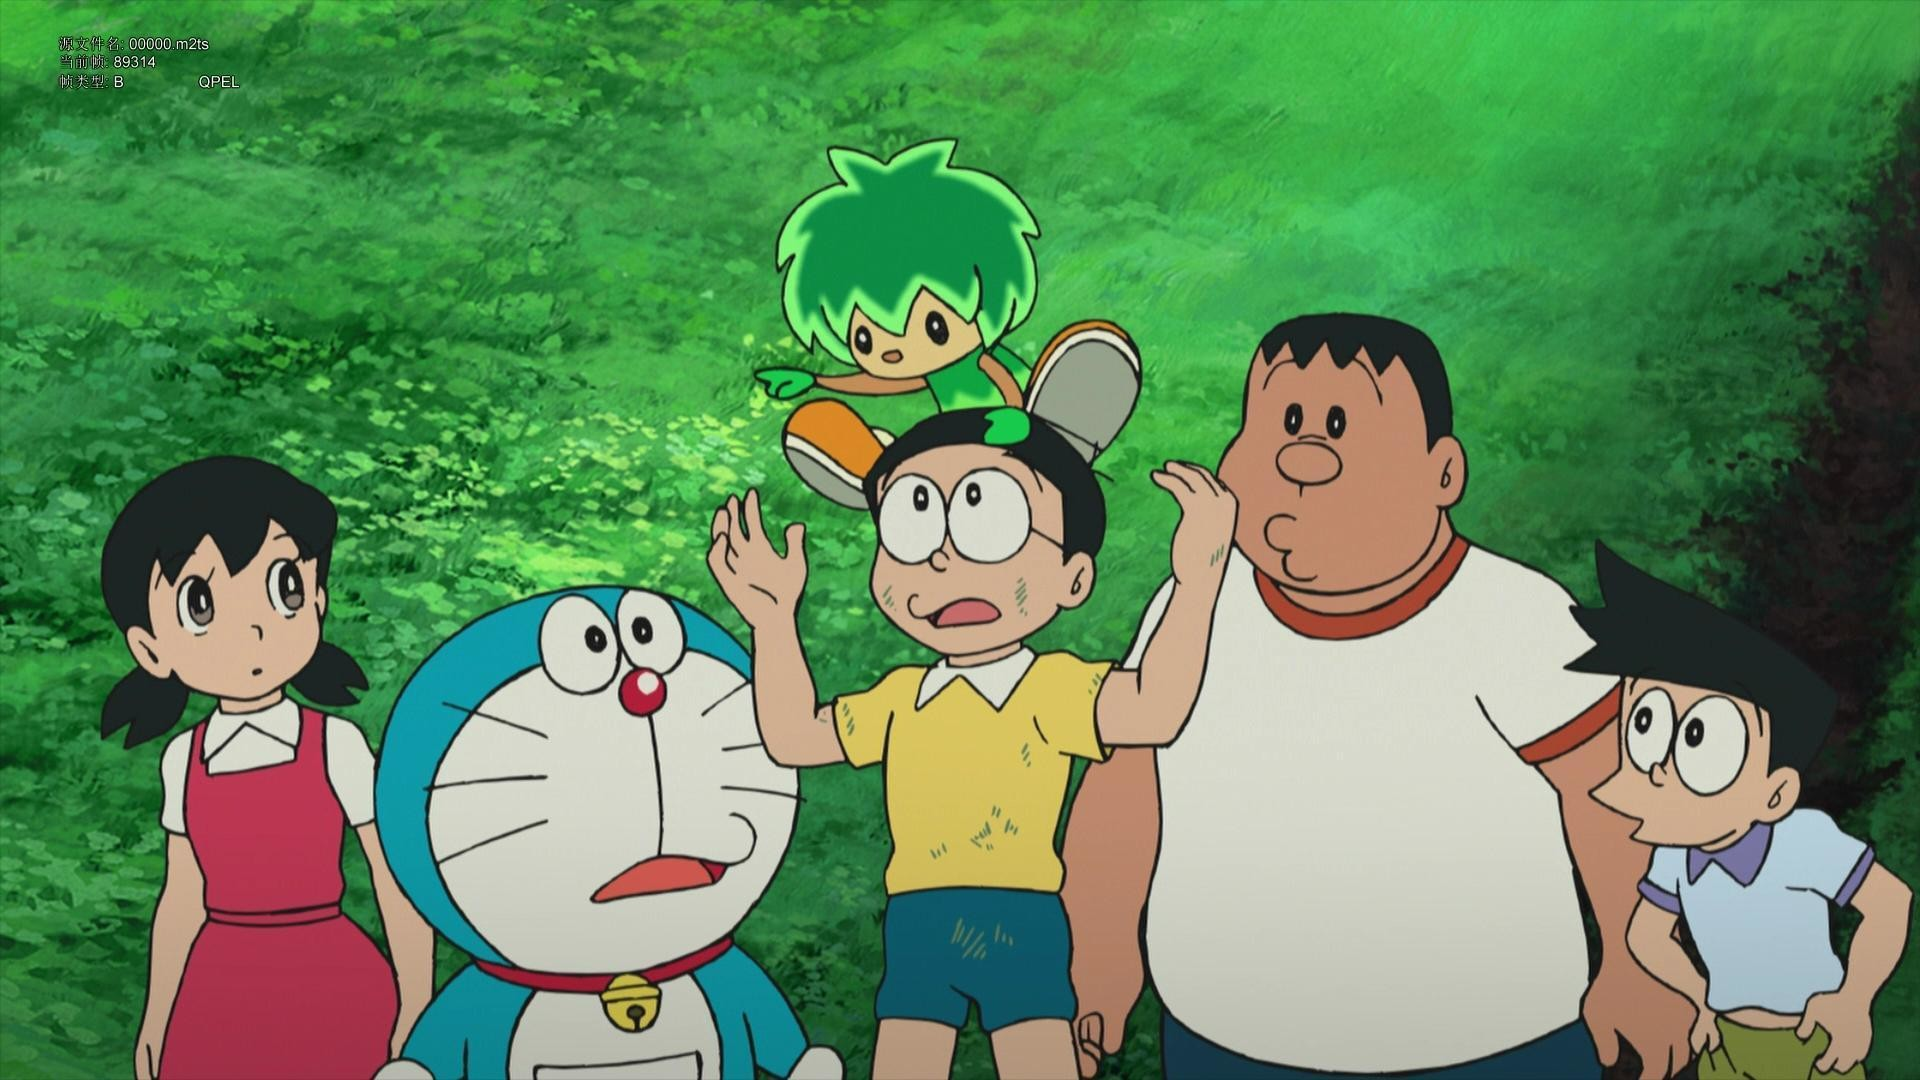 1920x1080 Doraemon and Nobita Cartoon